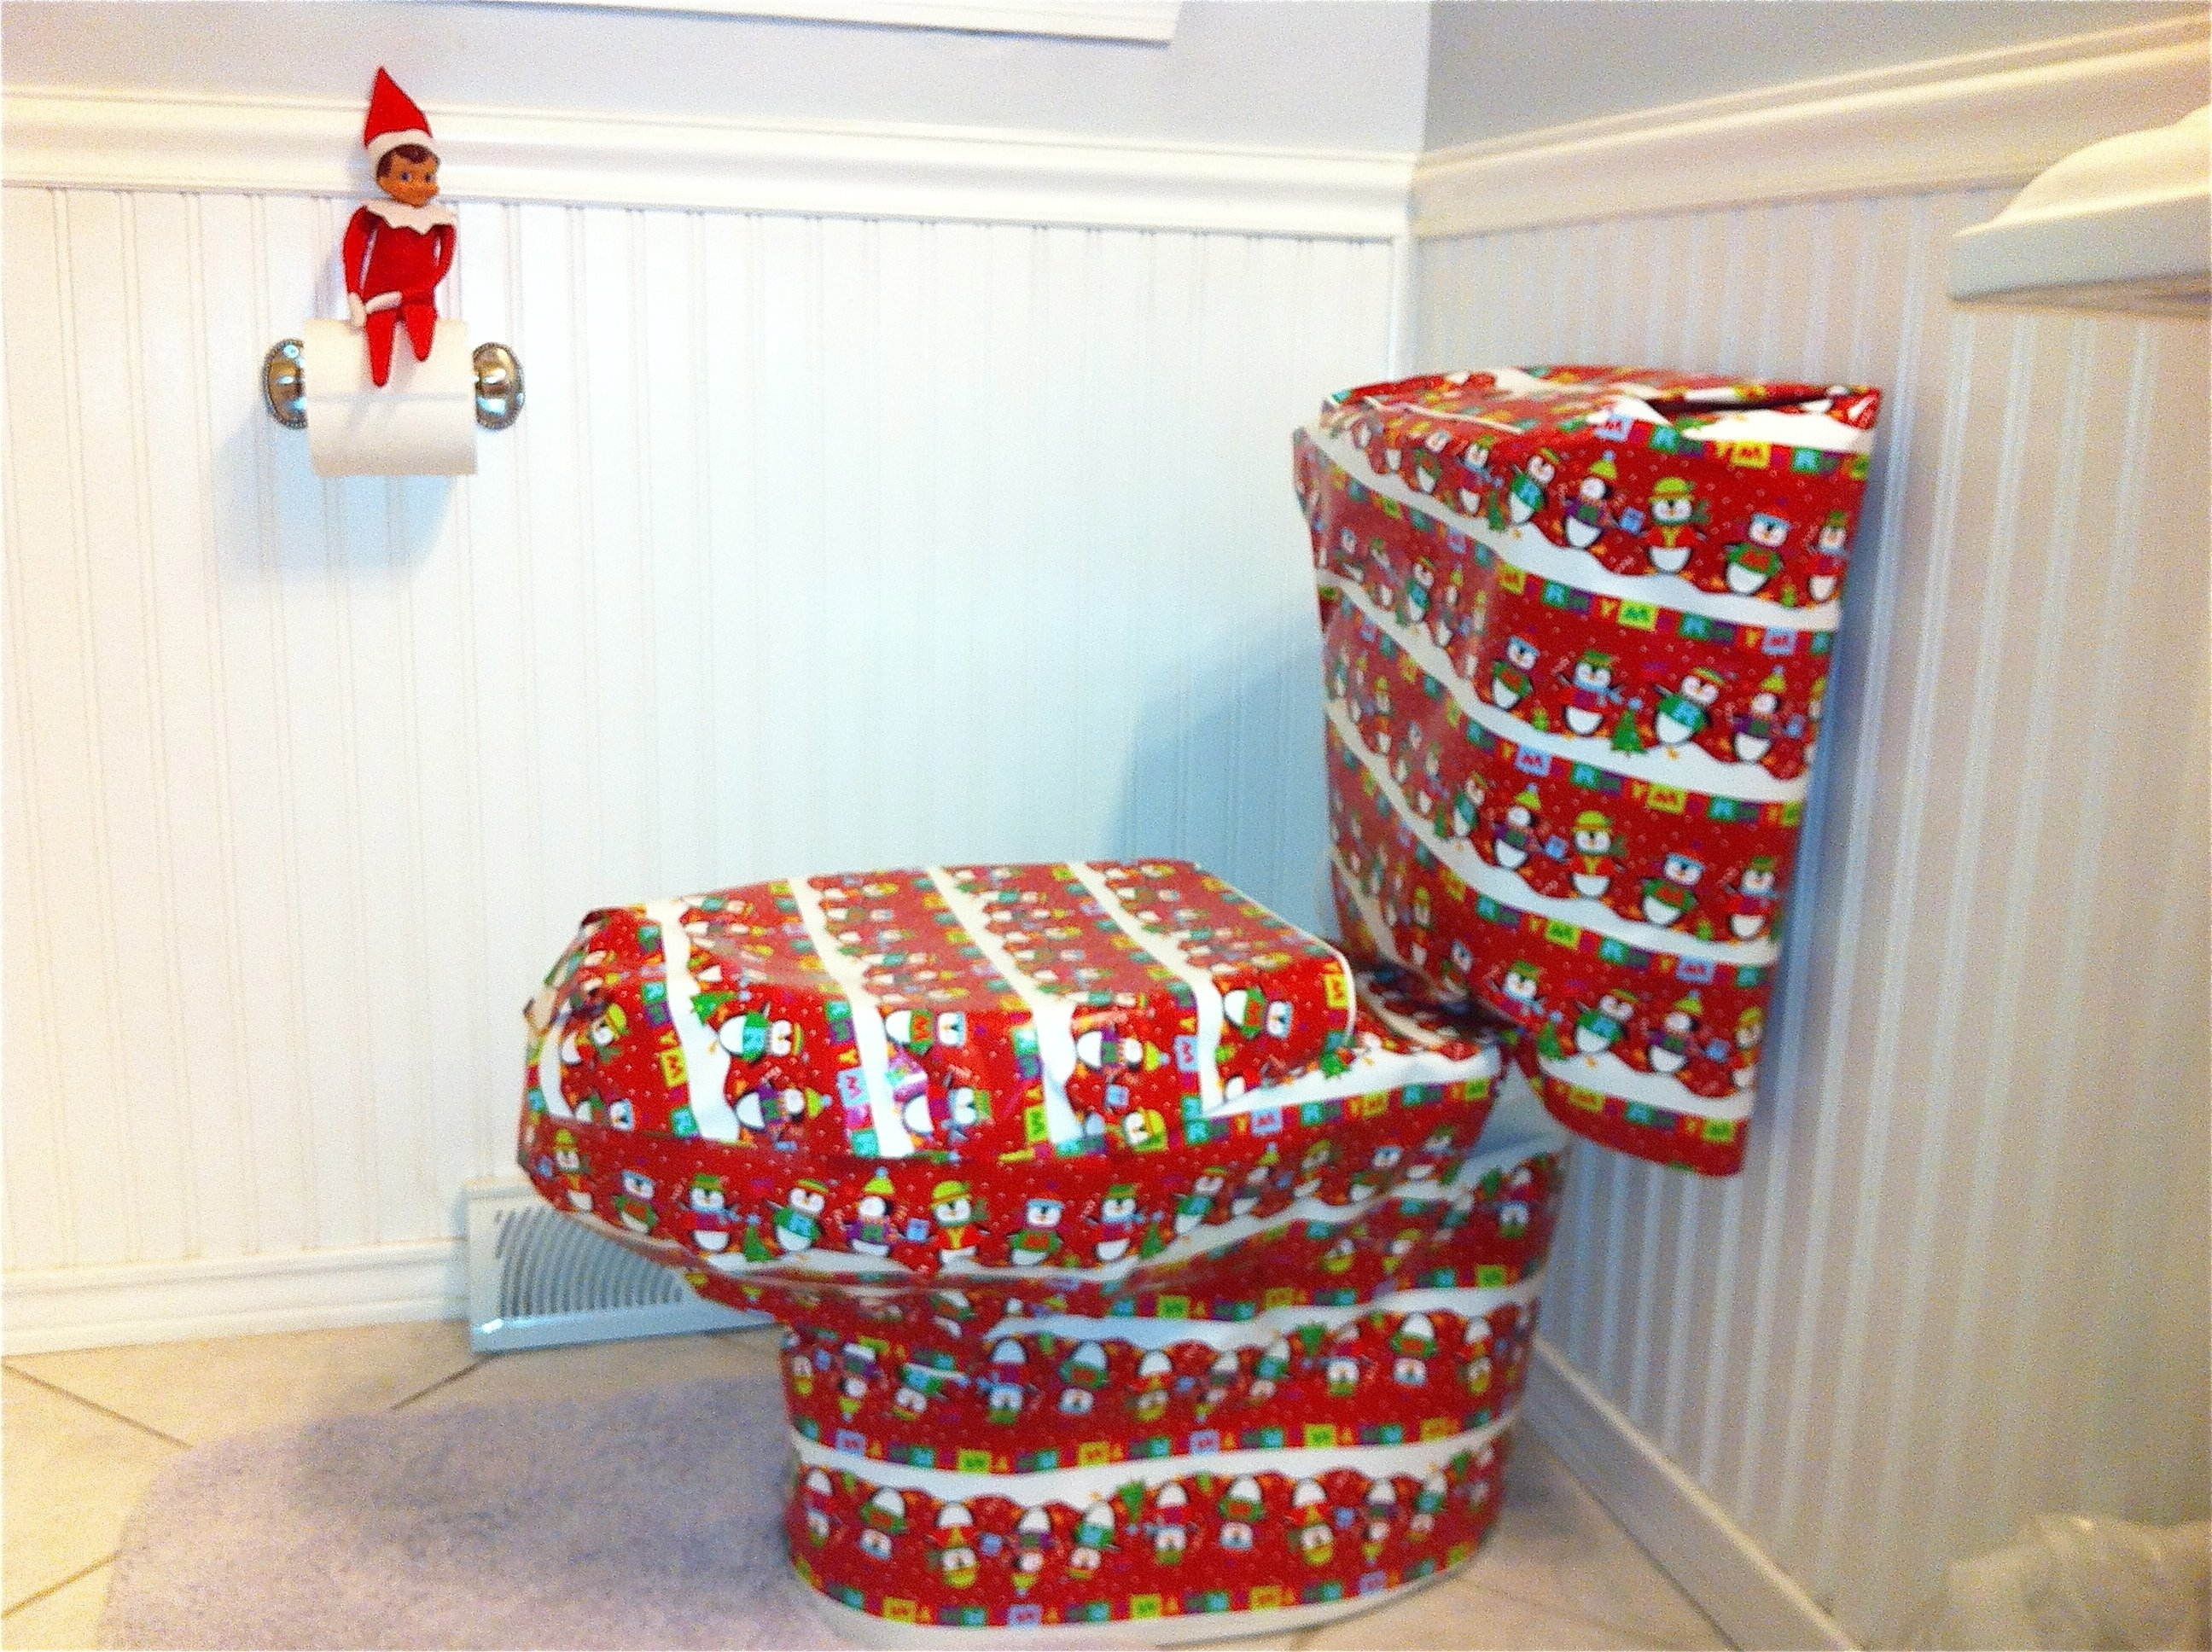 10 Stunning Ideas For Elf On Shelf 25 elf on the shelf quick and easy ideas that take under 5 mins 1